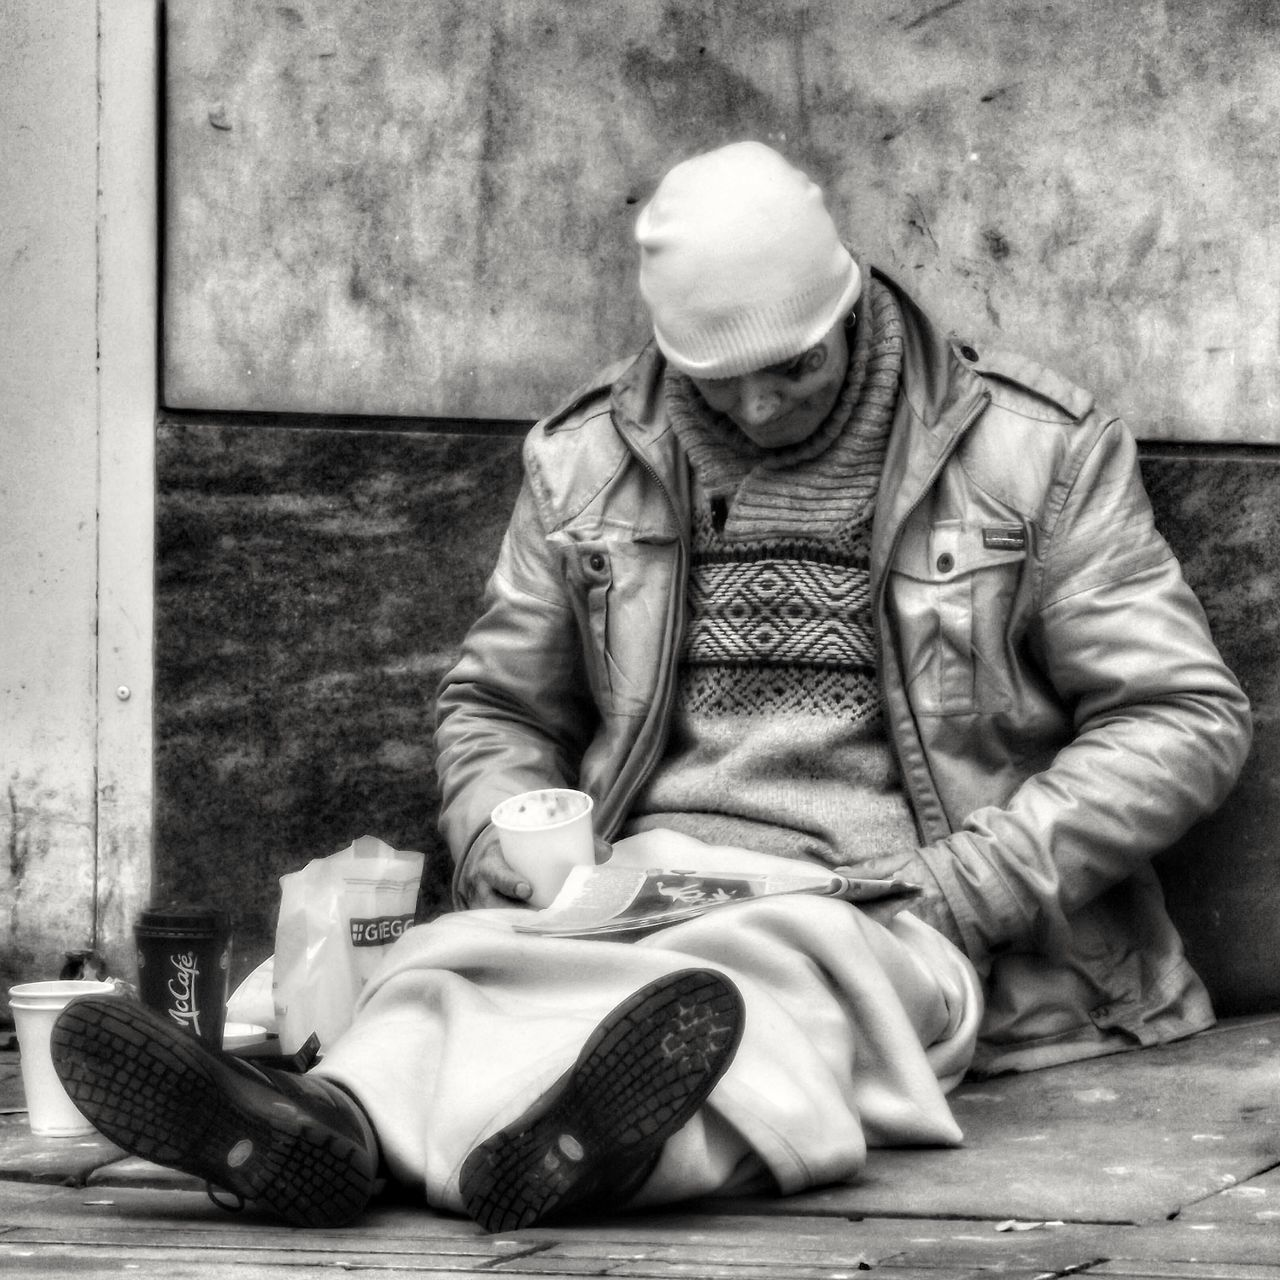 We need to be thankful for the things we have & remember how lucky we are .Taking pictures of people in and around Manchester for my people of Manchester collection People Watching People Of Manchester Homeless Of Manchester Uk Showcase March Everybodystreet Eyem Black And White EyeEm Best Shots - The Streets Monochrome Black N White Collection Hdr_Collection Hdr Photography Fujifilm Black And White Black And White Photography Black And White Collection  Street Portrait Bnw Photography Street Life Streetphotography_bw Bnw_life EyeEm Best Shots Street Photography Black & White Portrait Black And White Street Photography